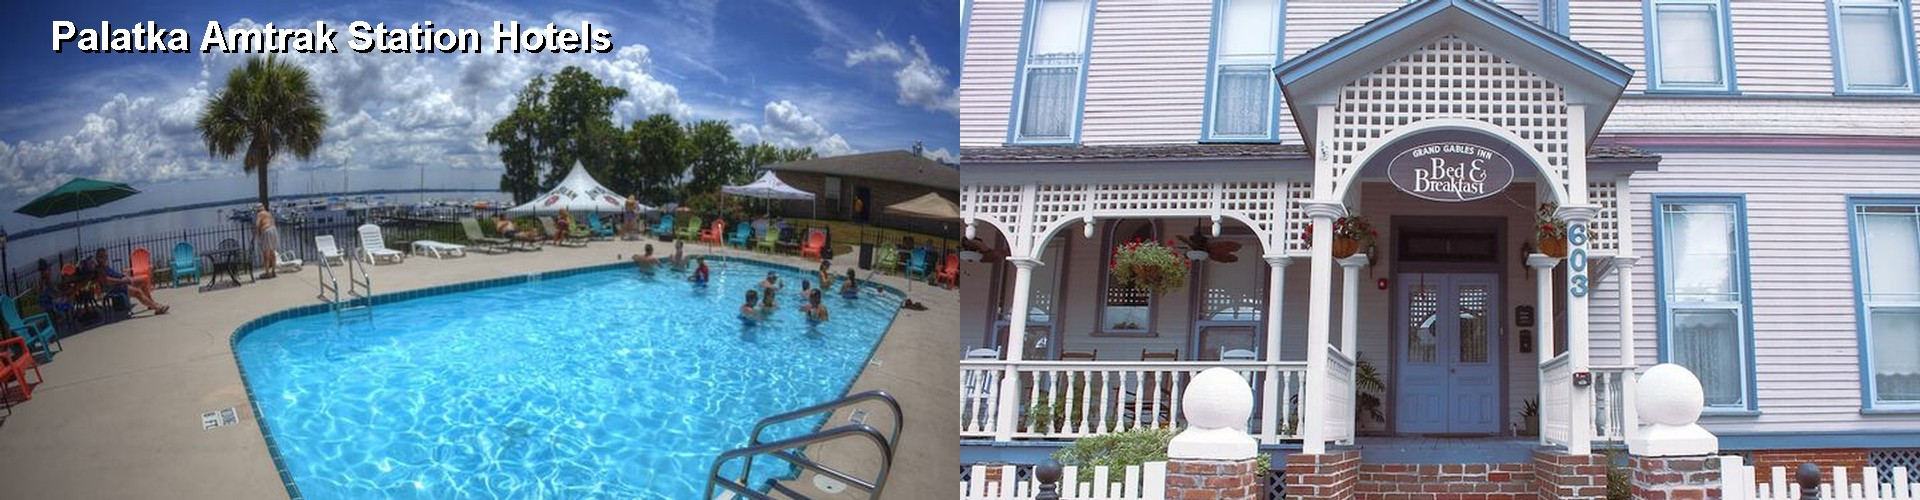 5 Best Hotels near Palatka Amtrak Station